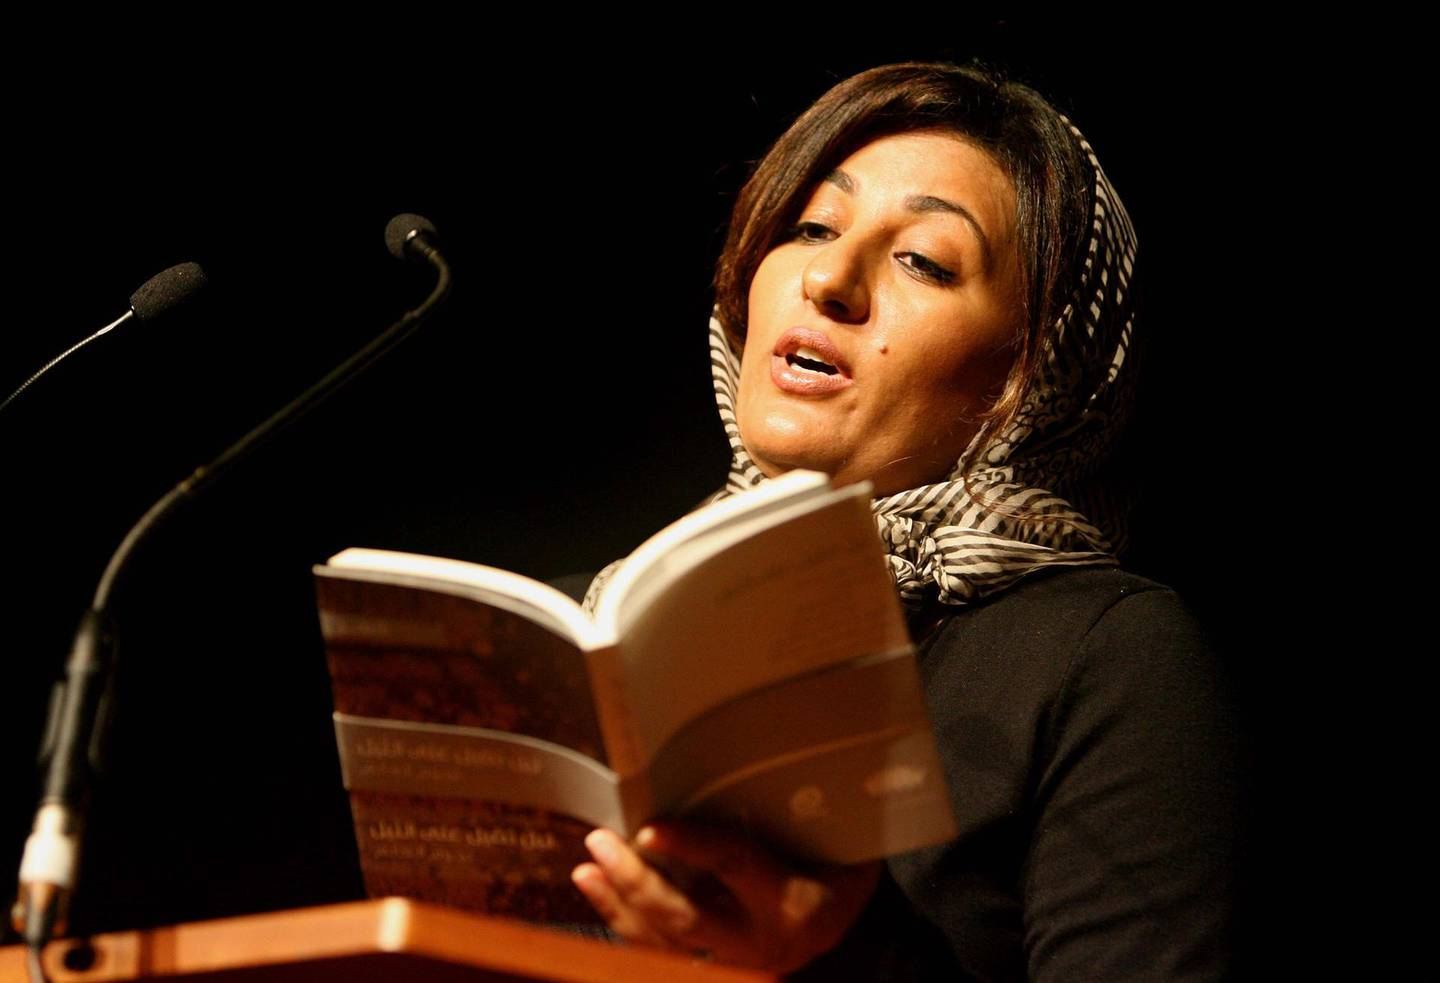 LONDON.14th July 2010. Emirati poet Nujoom al Ghanem rehearses reading her poetry at the Southbank Centre  in London as part of the London Literature Festival.  Stephen Lock for The National.